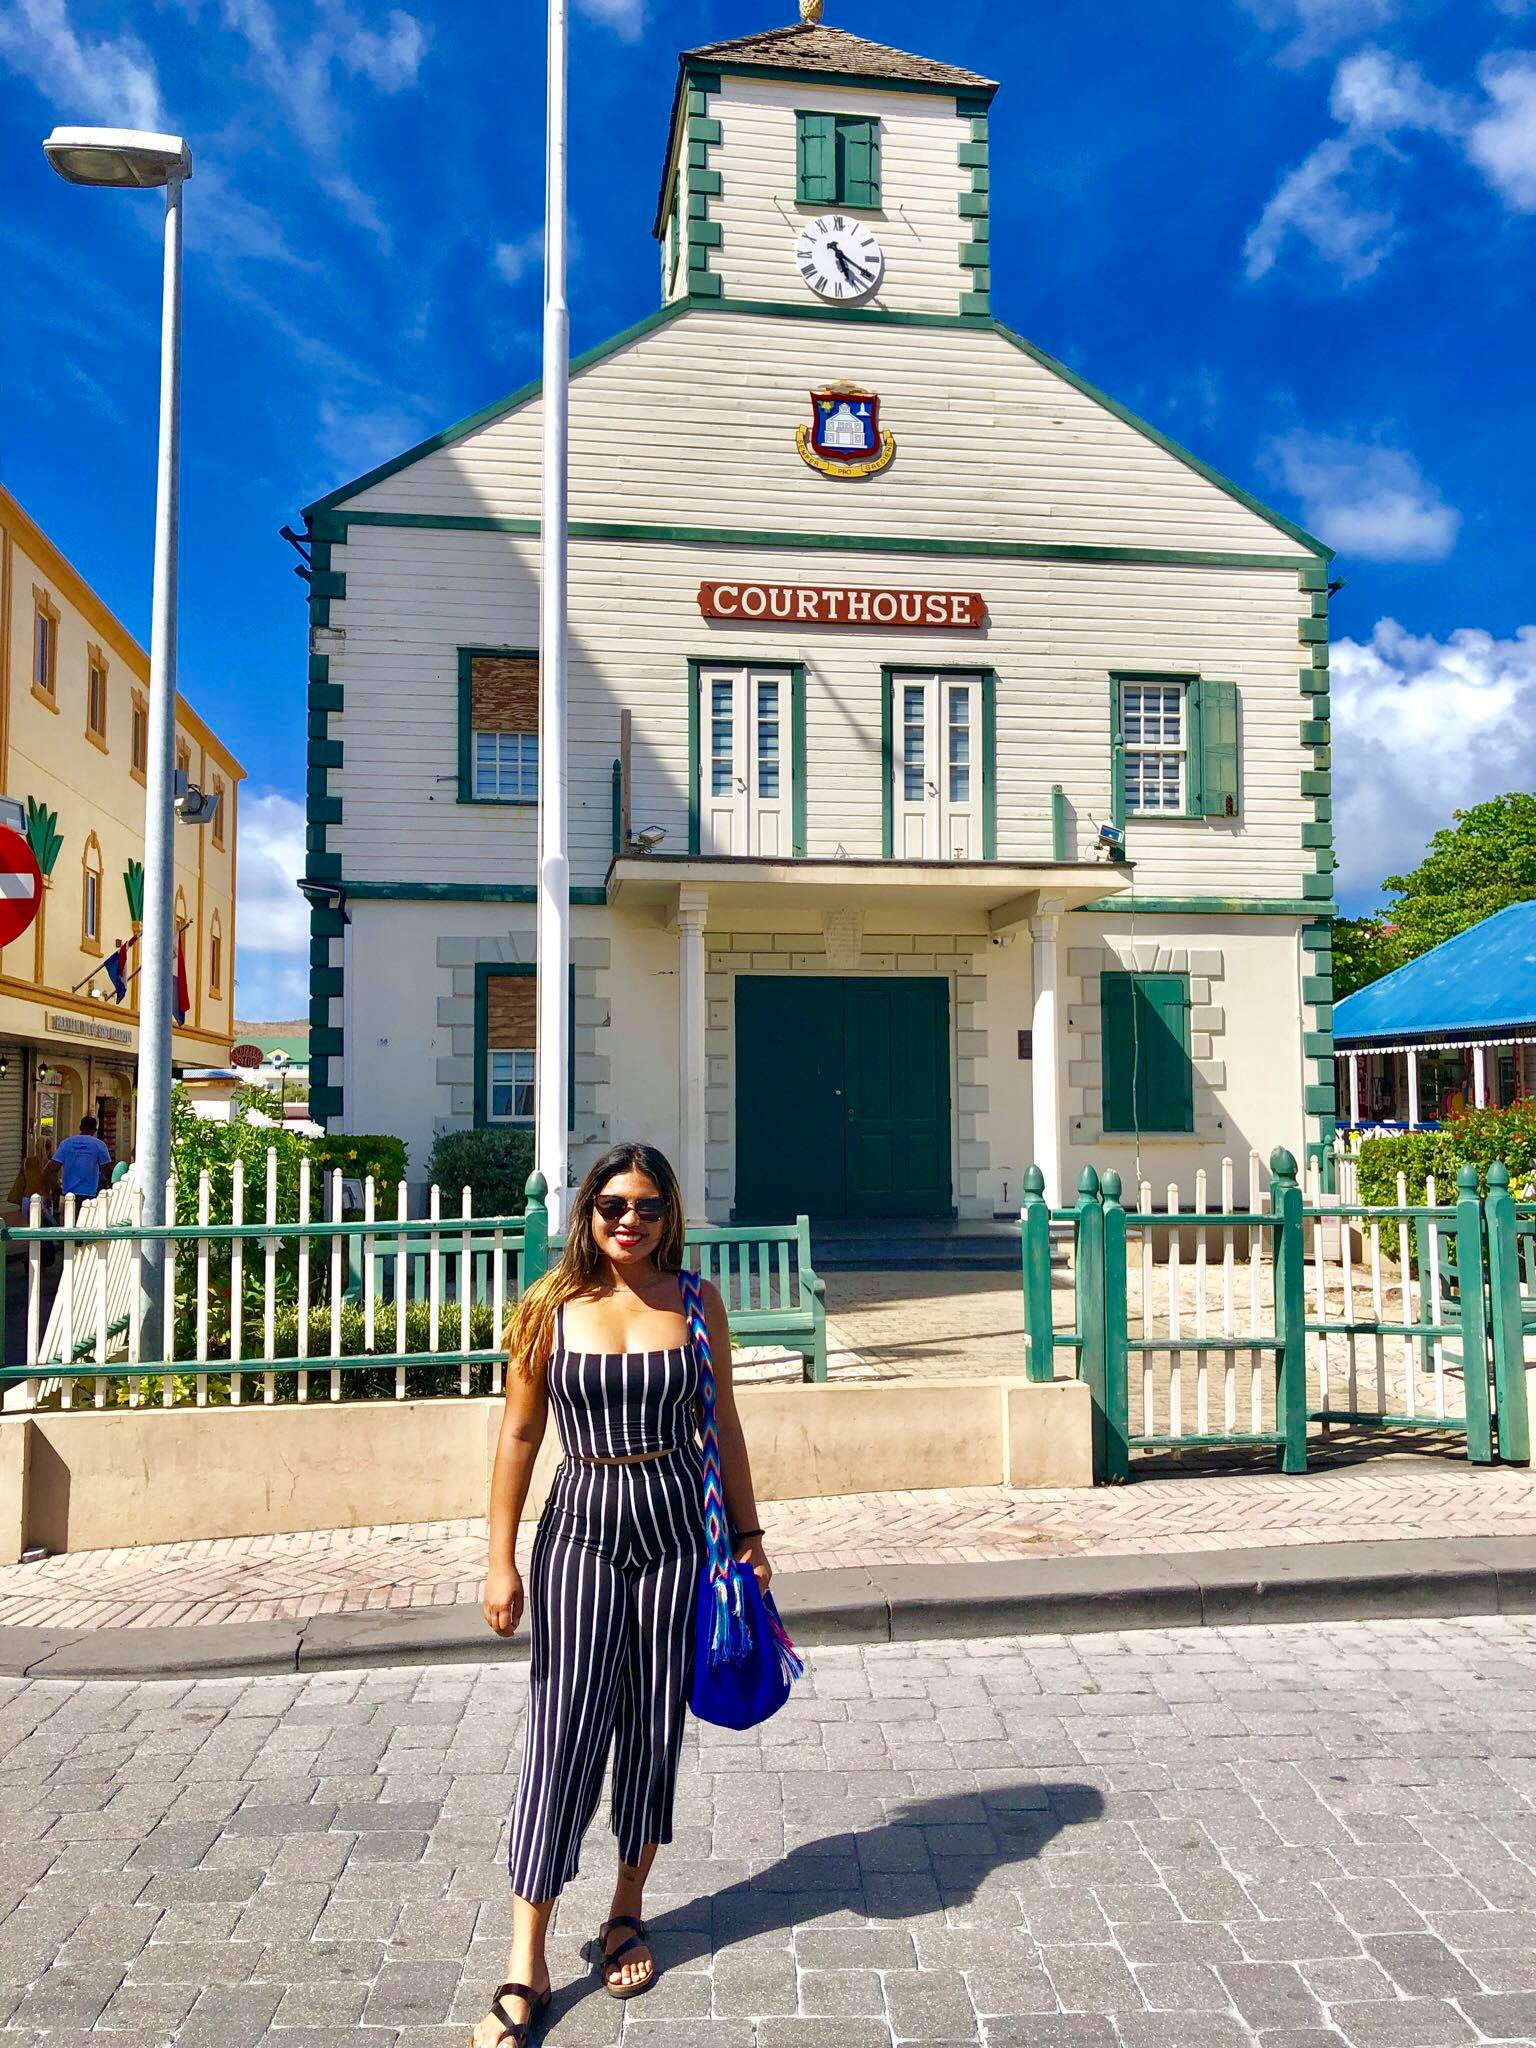 Kach Solo Travels in 2019 The last stop on my 7-day Caribbean Cruise1.jpg